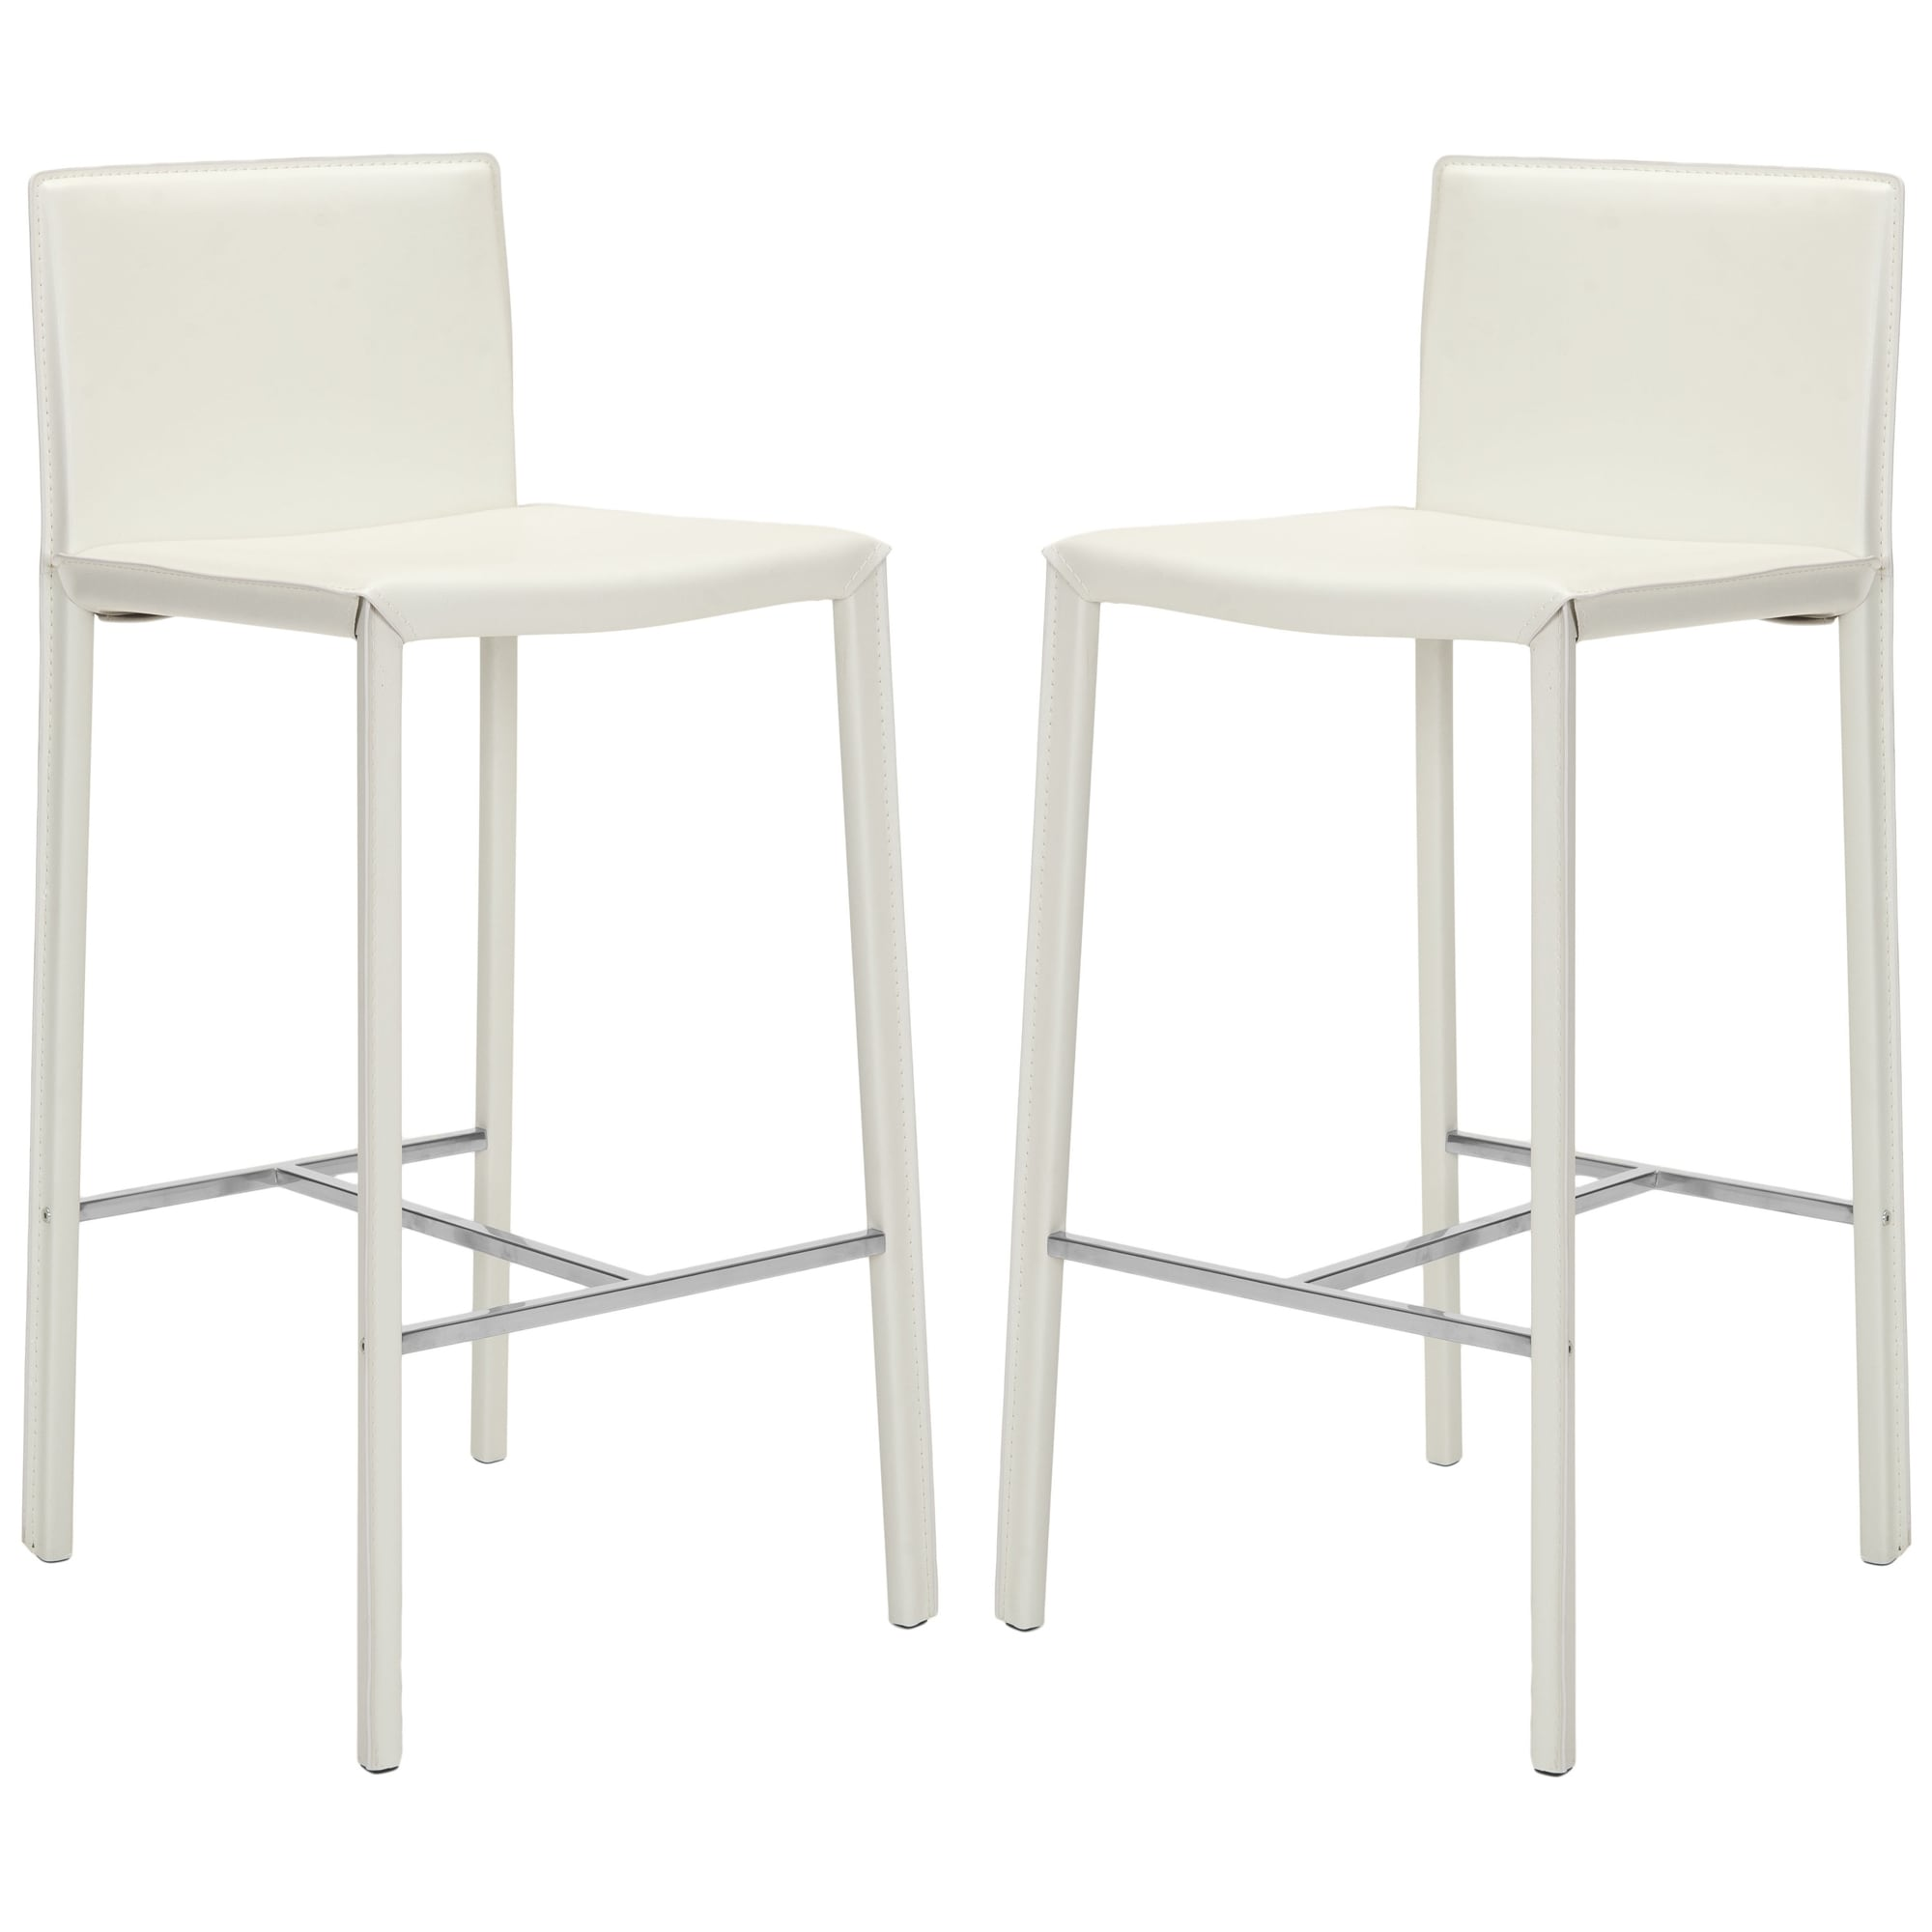 30 Inch Park White Leather Bar Stool